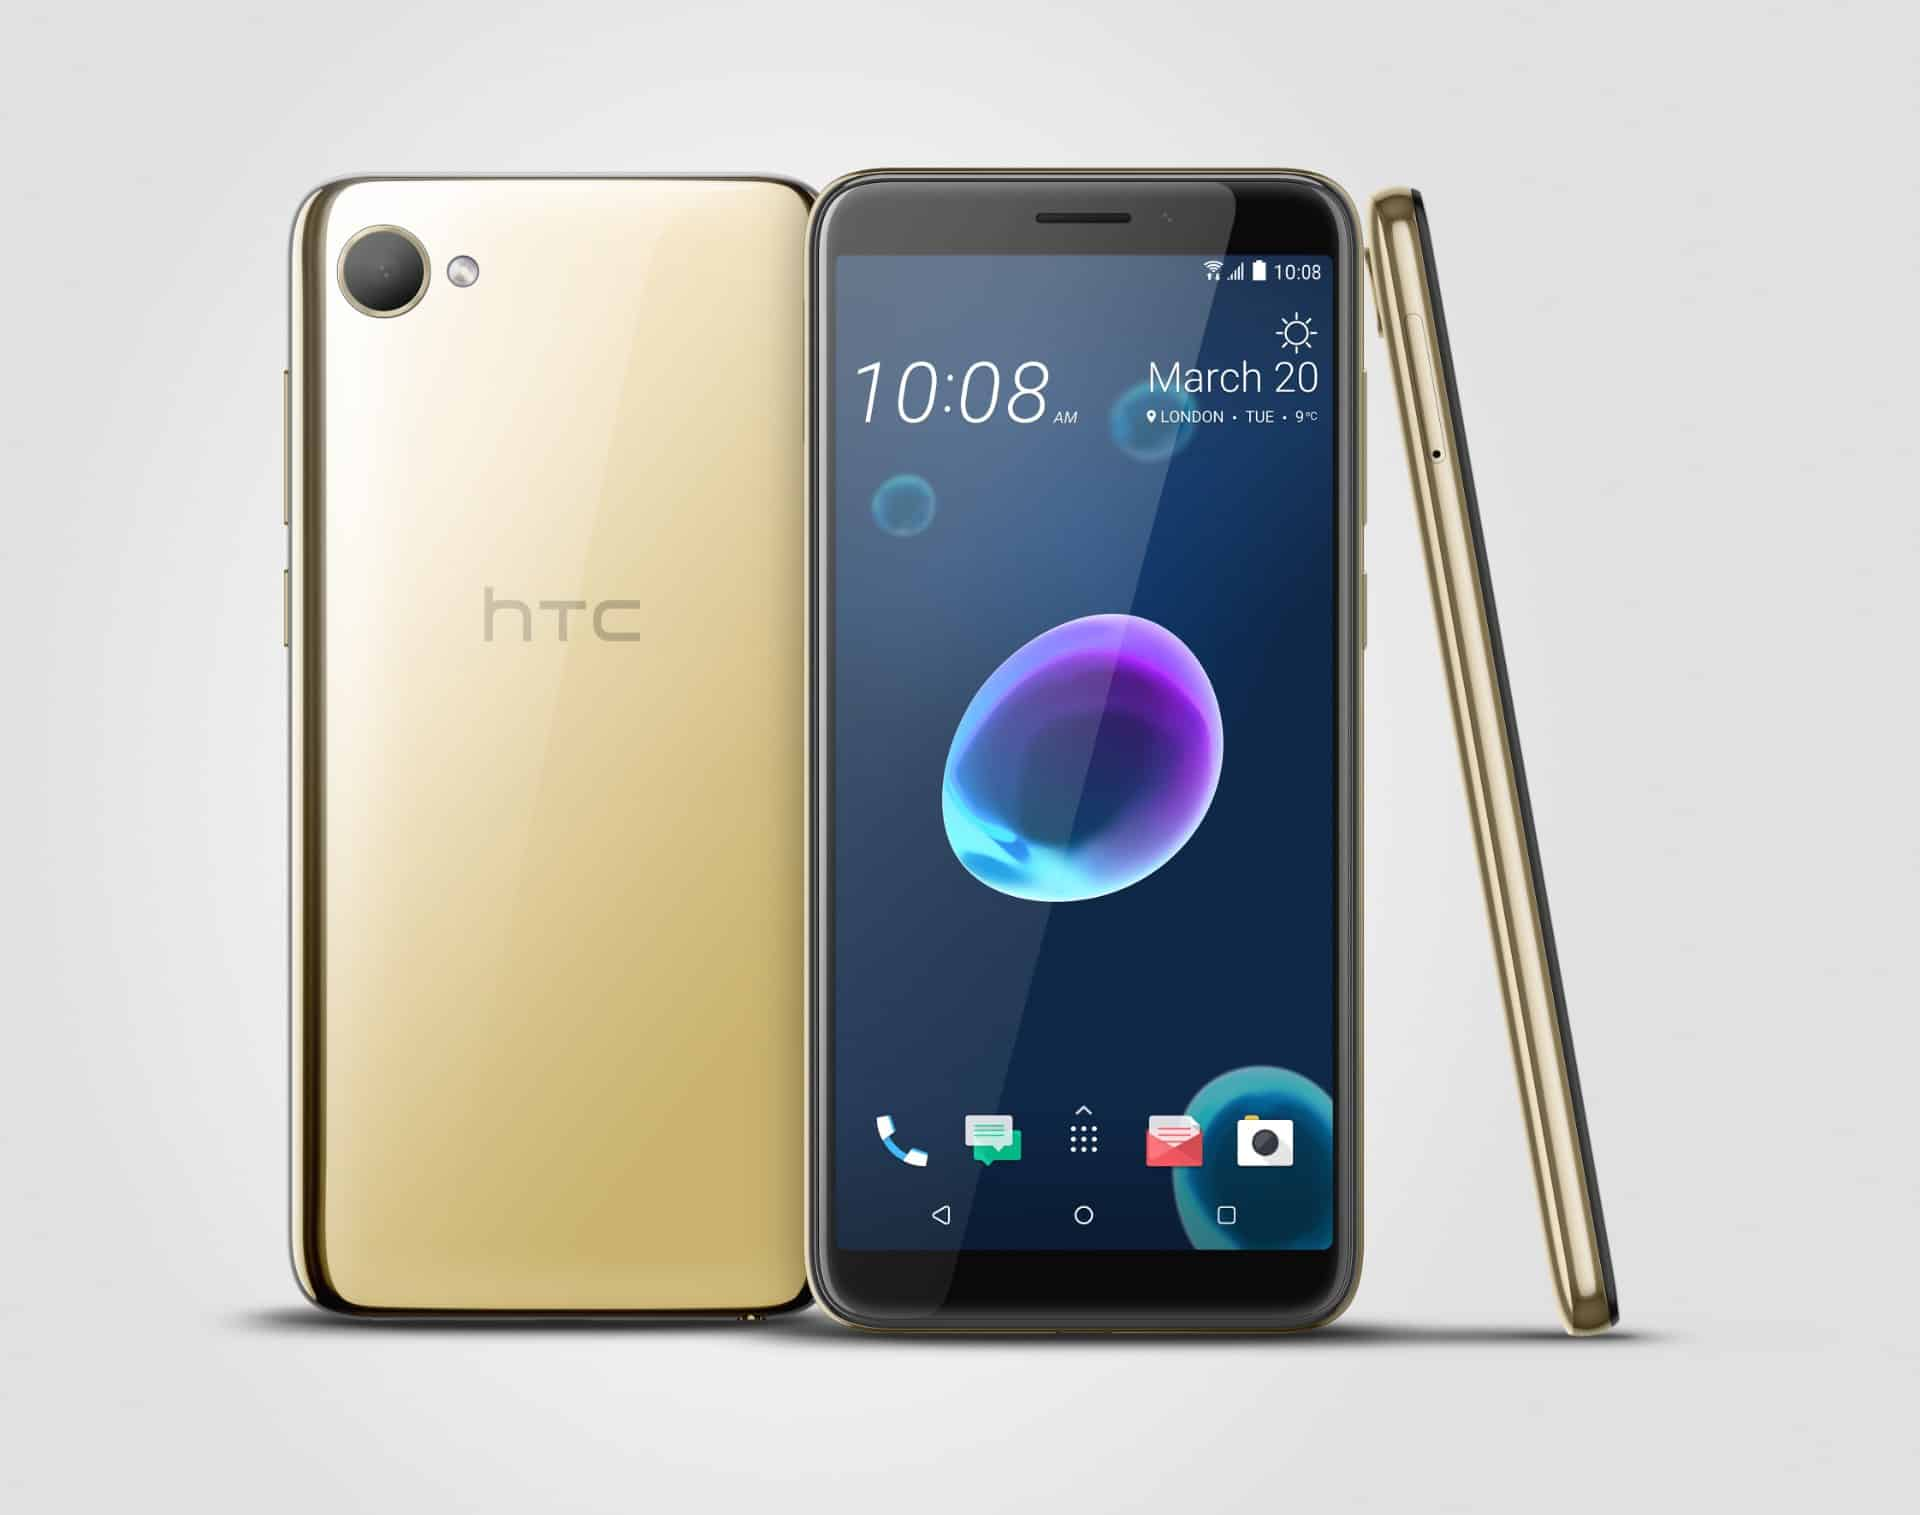 HTC's new Desire 12 phones have humdrum specs but splashy colors